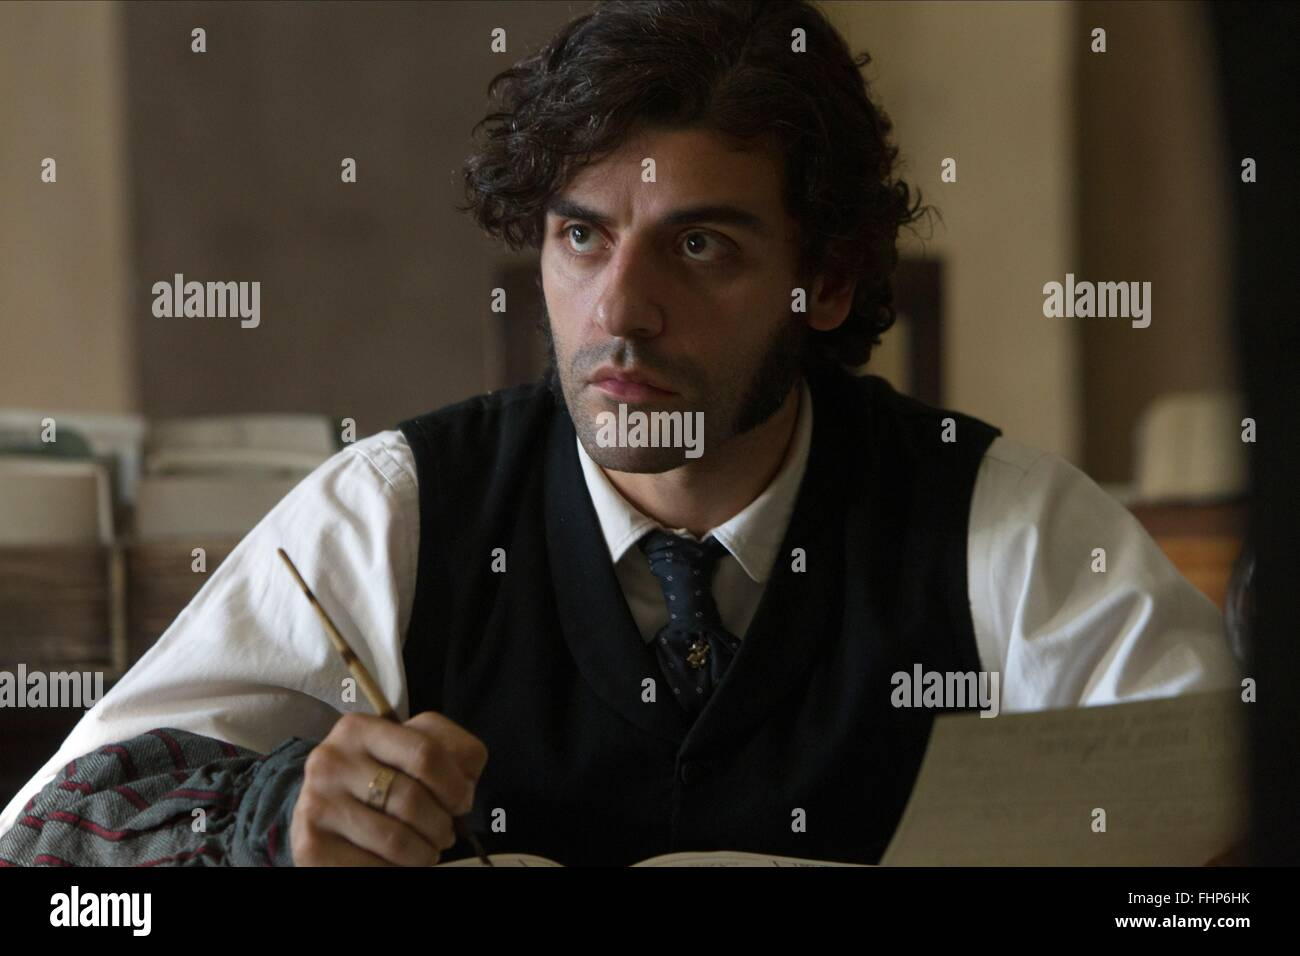 OSCAR ISAAC IN SECRET (2013) - Stock Image